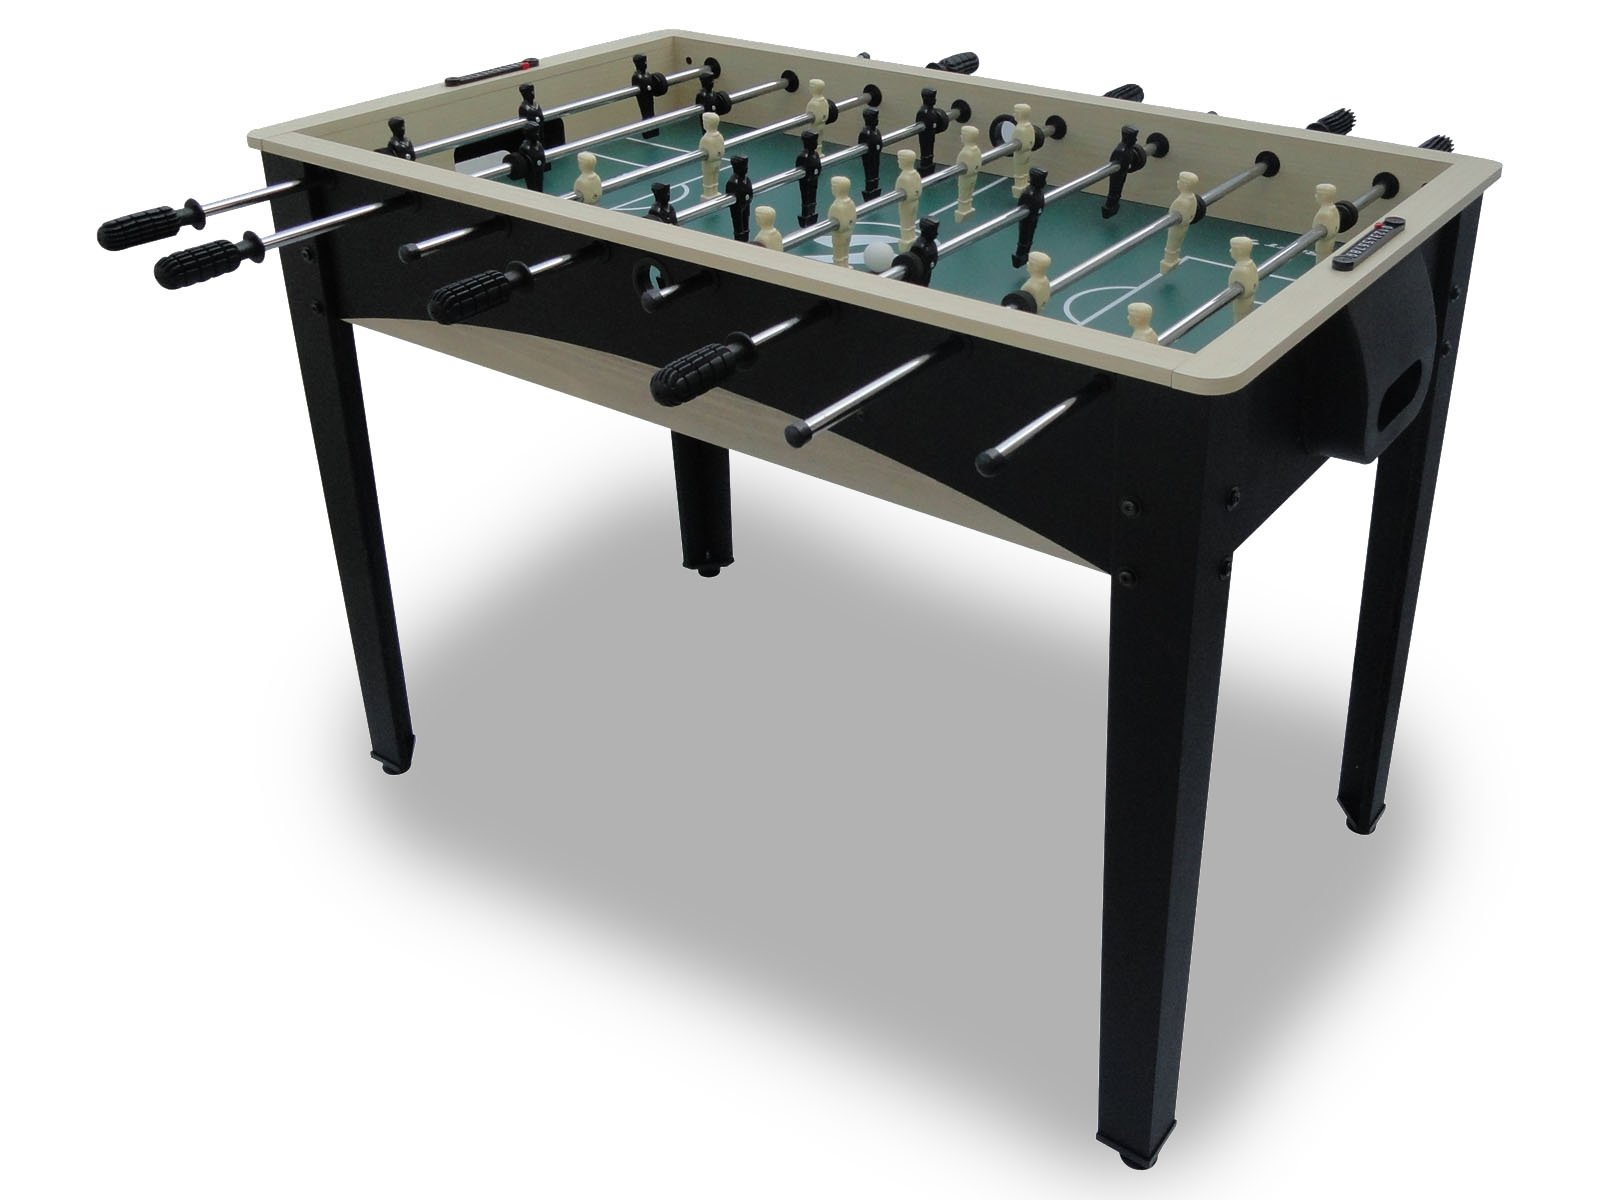 Sportcraft 48-Inch Playmaker Foosball Table